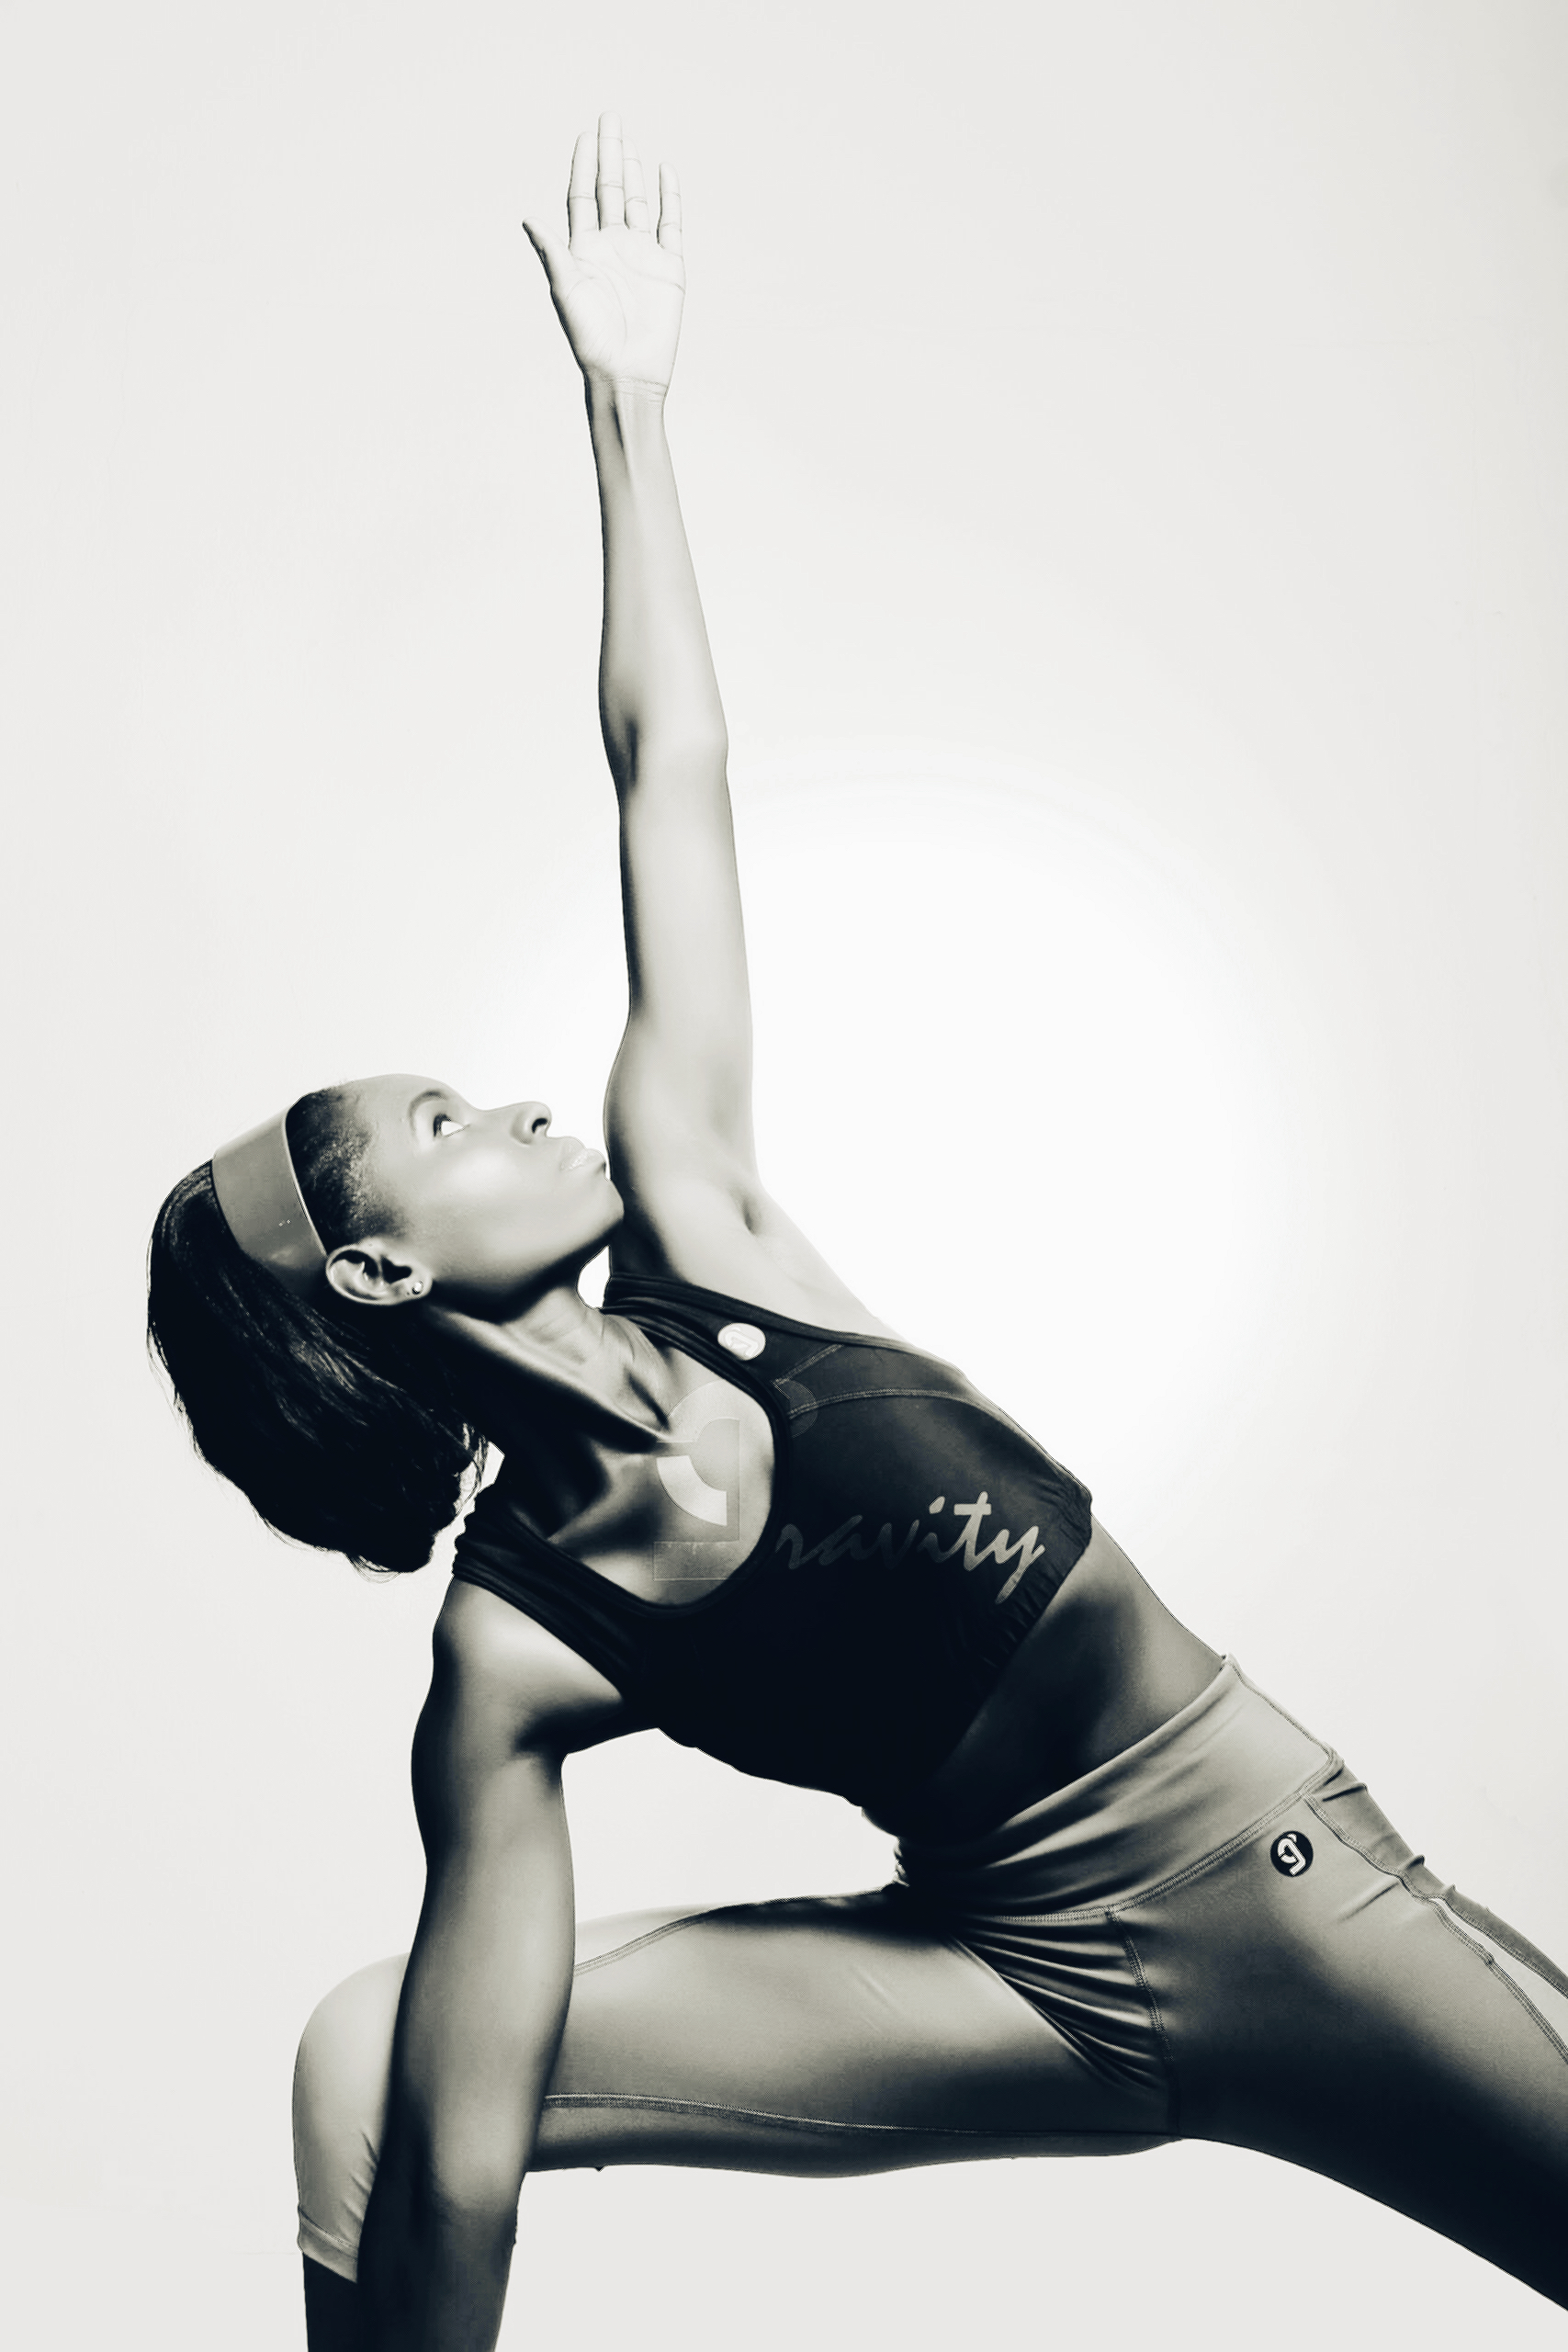 Stretch Beyond Your Limits With Yoga!